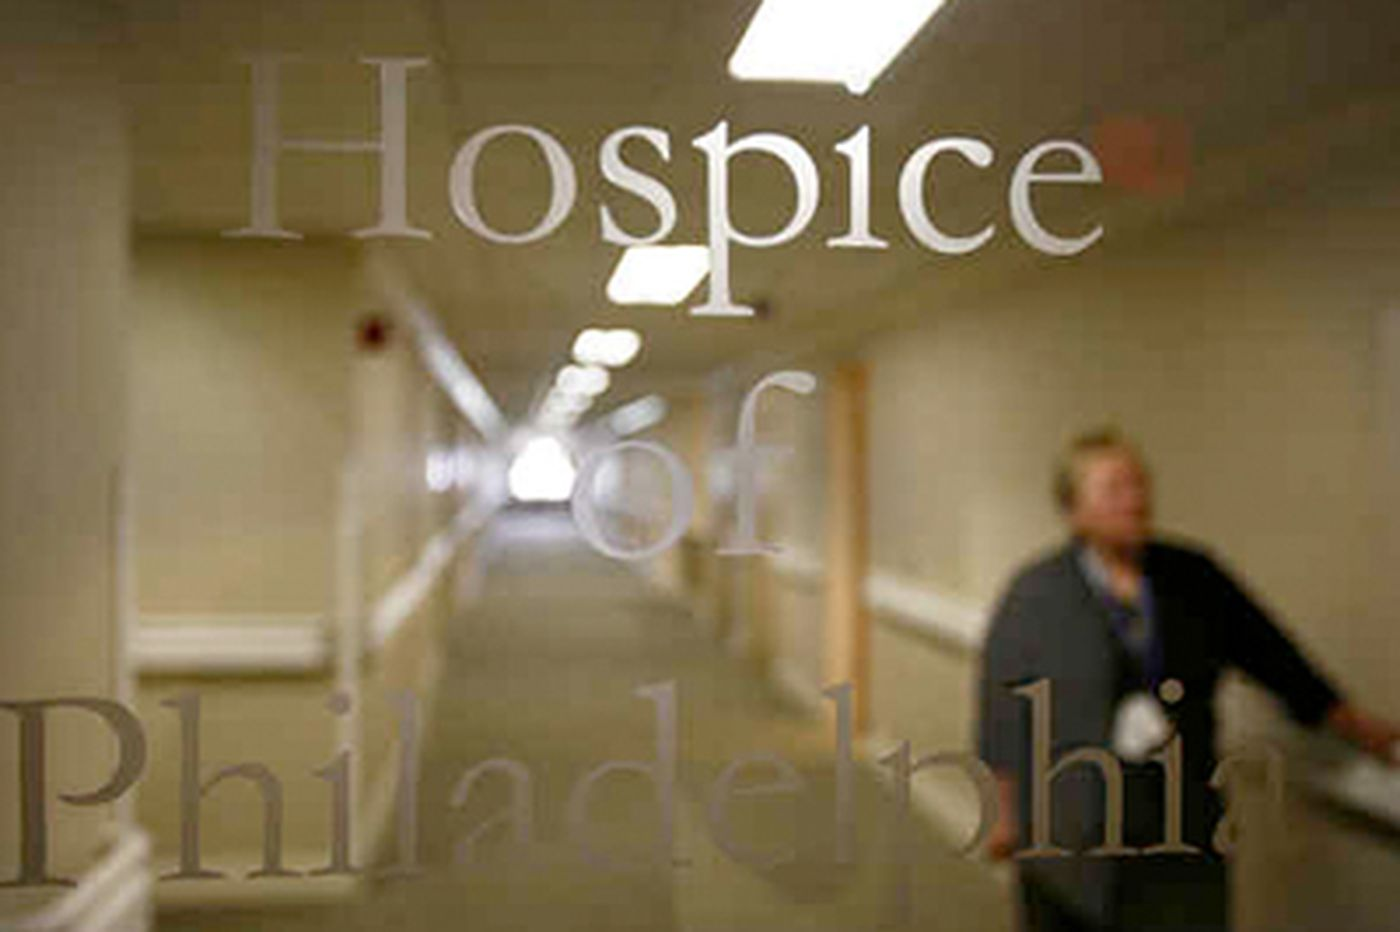 New market for special end-of-life care that is inpatient